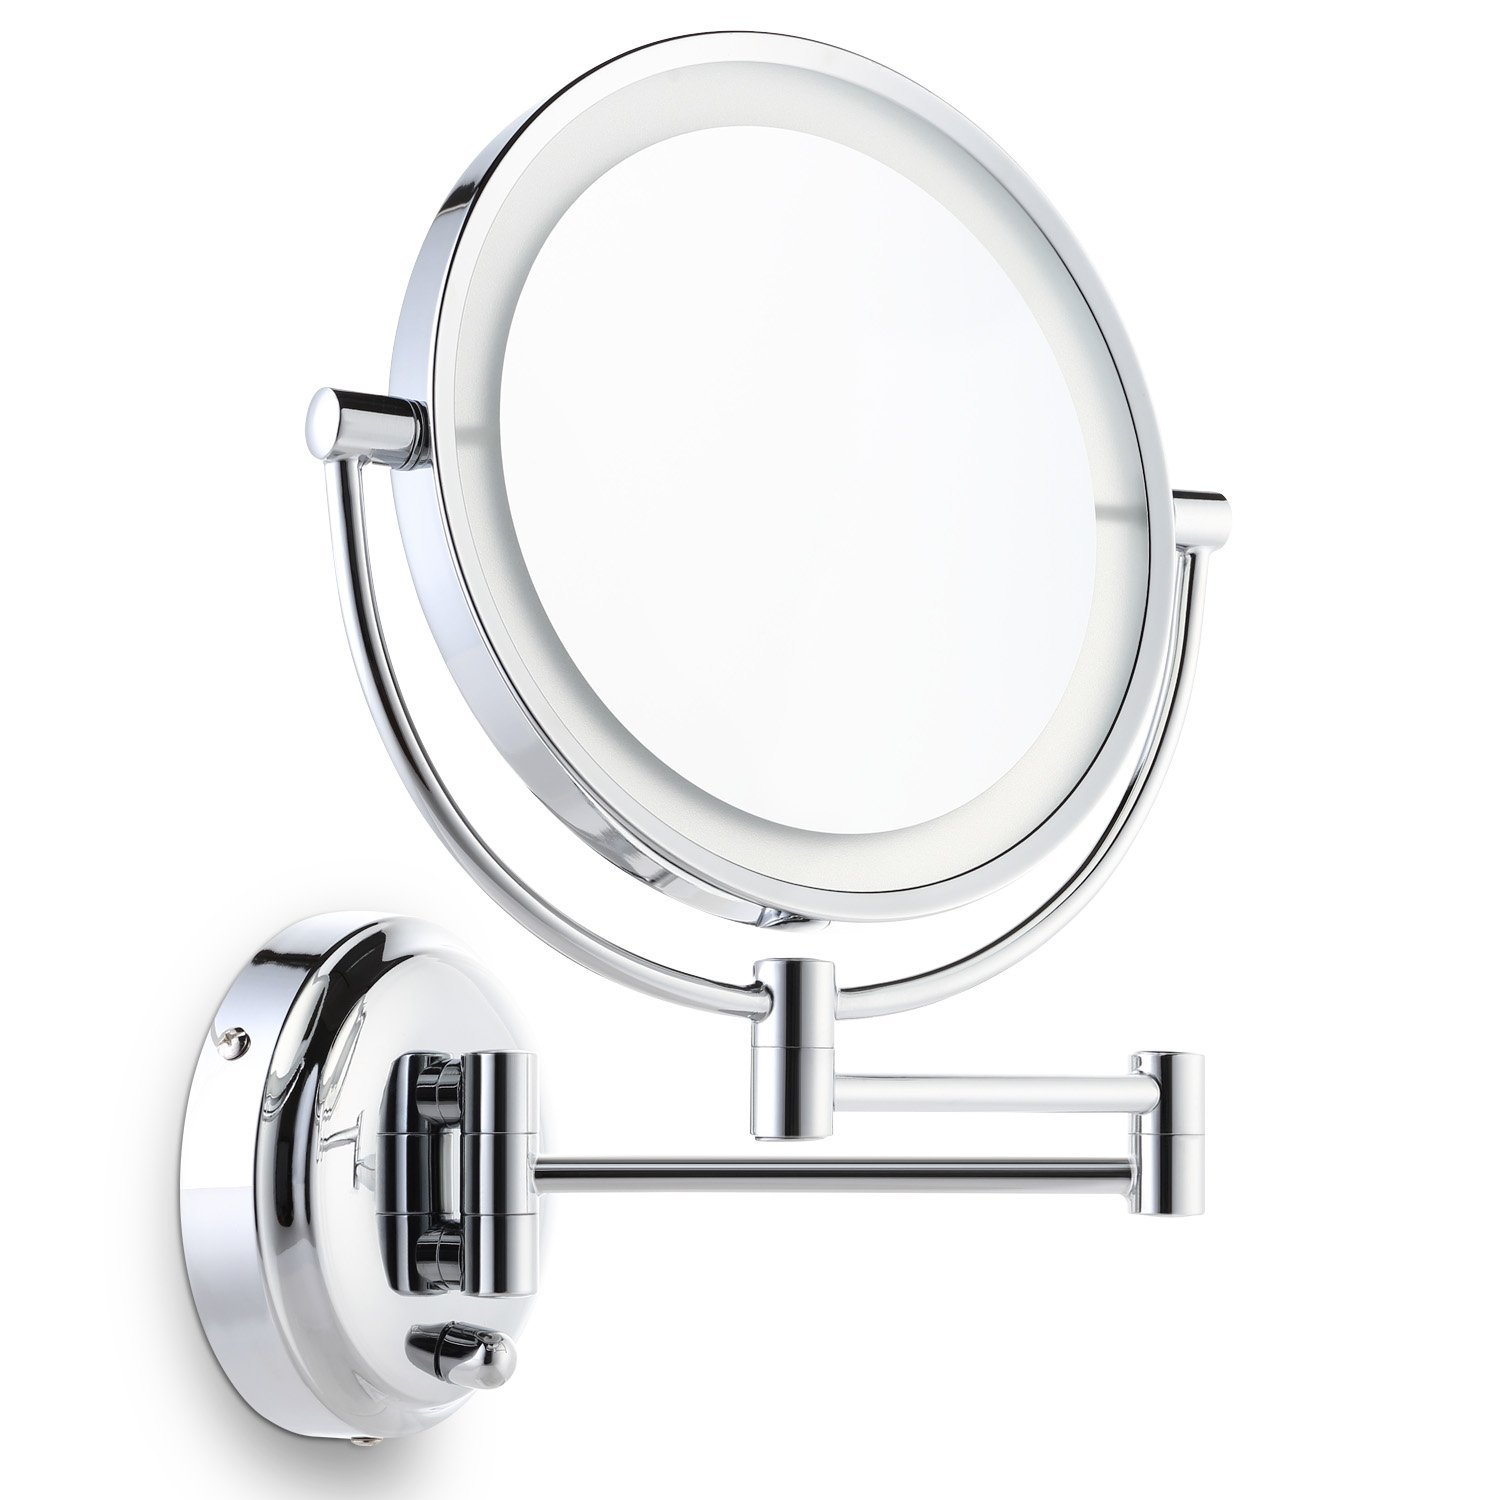 Attractive Amazon.com: Miusco Lighted Magnifying Double Side Adjustable Makeup Mirror,  Wall Mounted, 8 Inch, Chrome: Home U0026 Kitchen